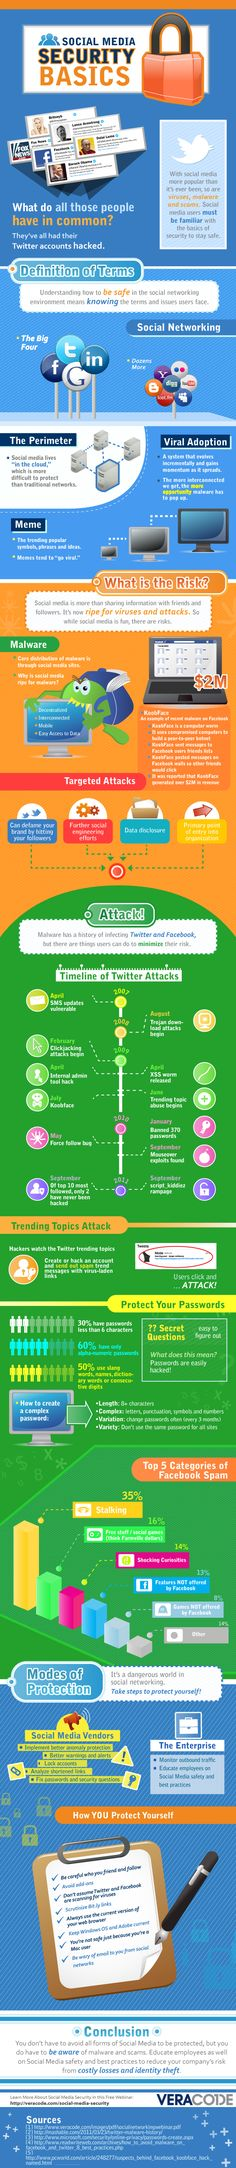 Social Security 101 – How To Protect Yourself From Malware And Spam On Twitter.  #twitter #malware #spam #infografia #infografía #infografias #infograph #graph #graphics #infographics